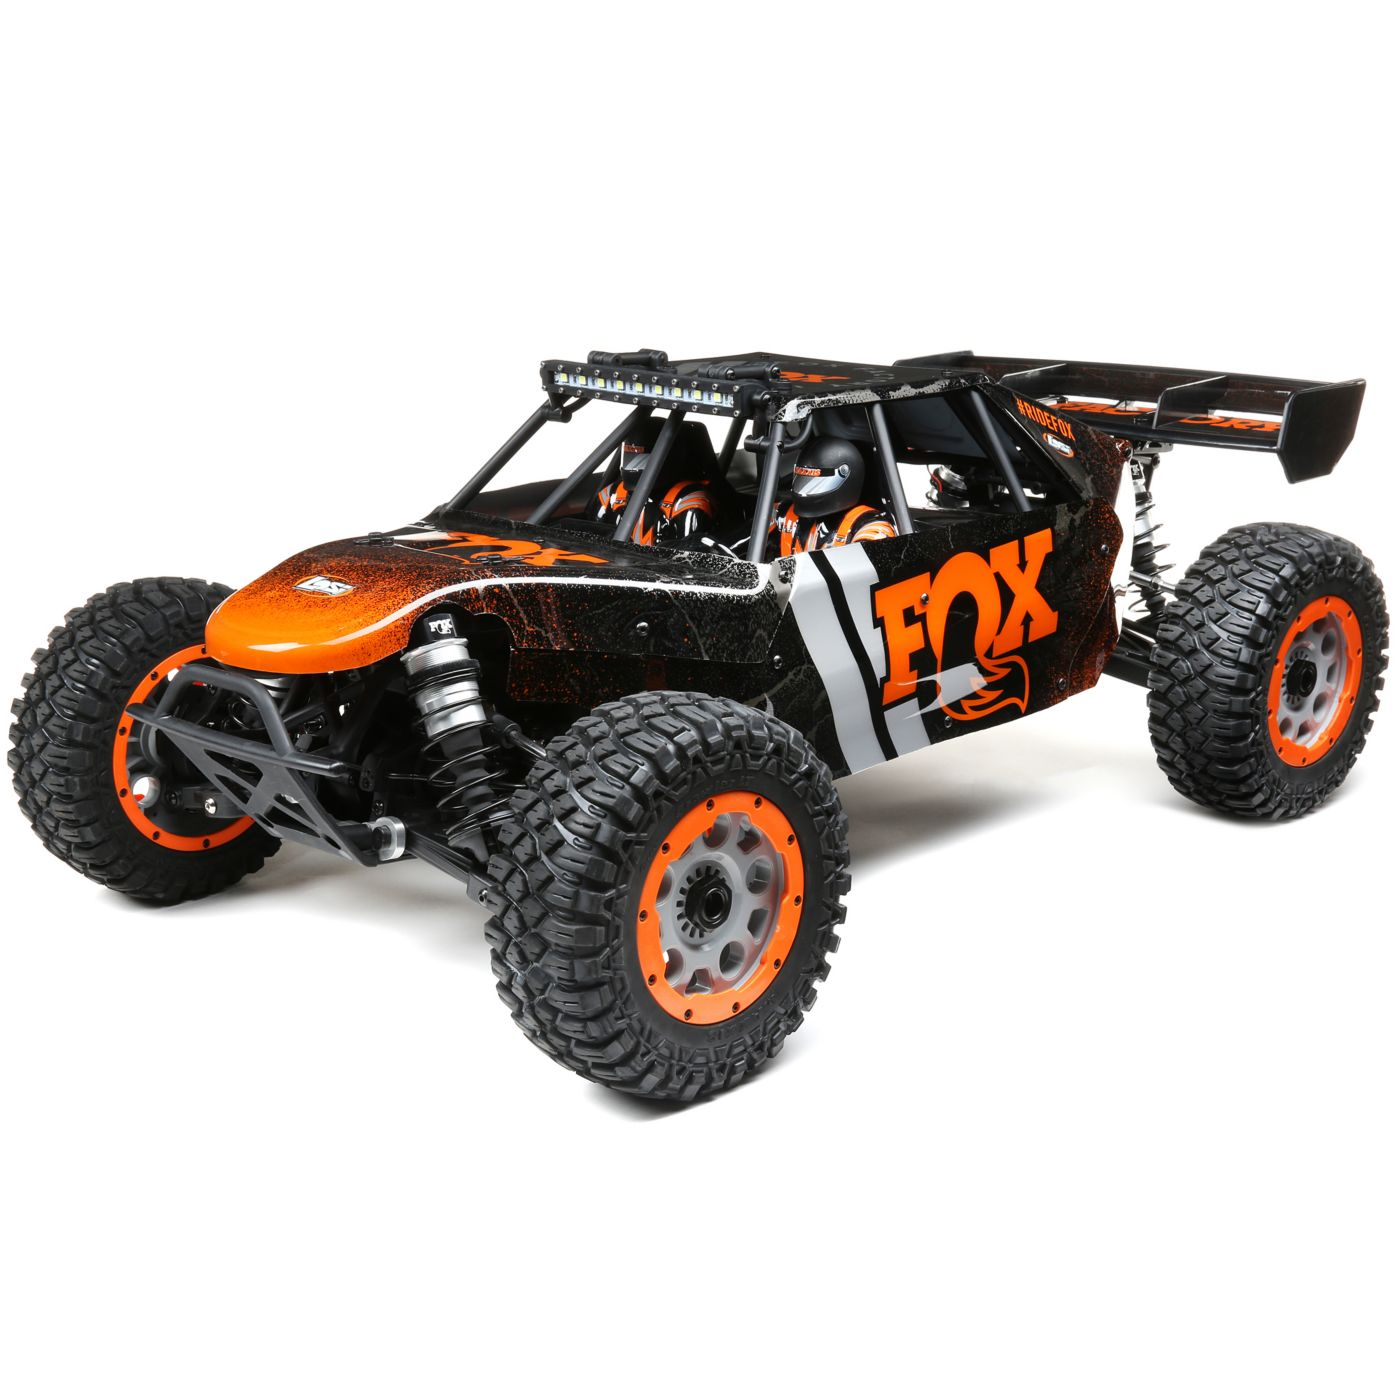 Losi's Latest Large-scale Creation: The DBXL-E 2.0 Desert Buggy